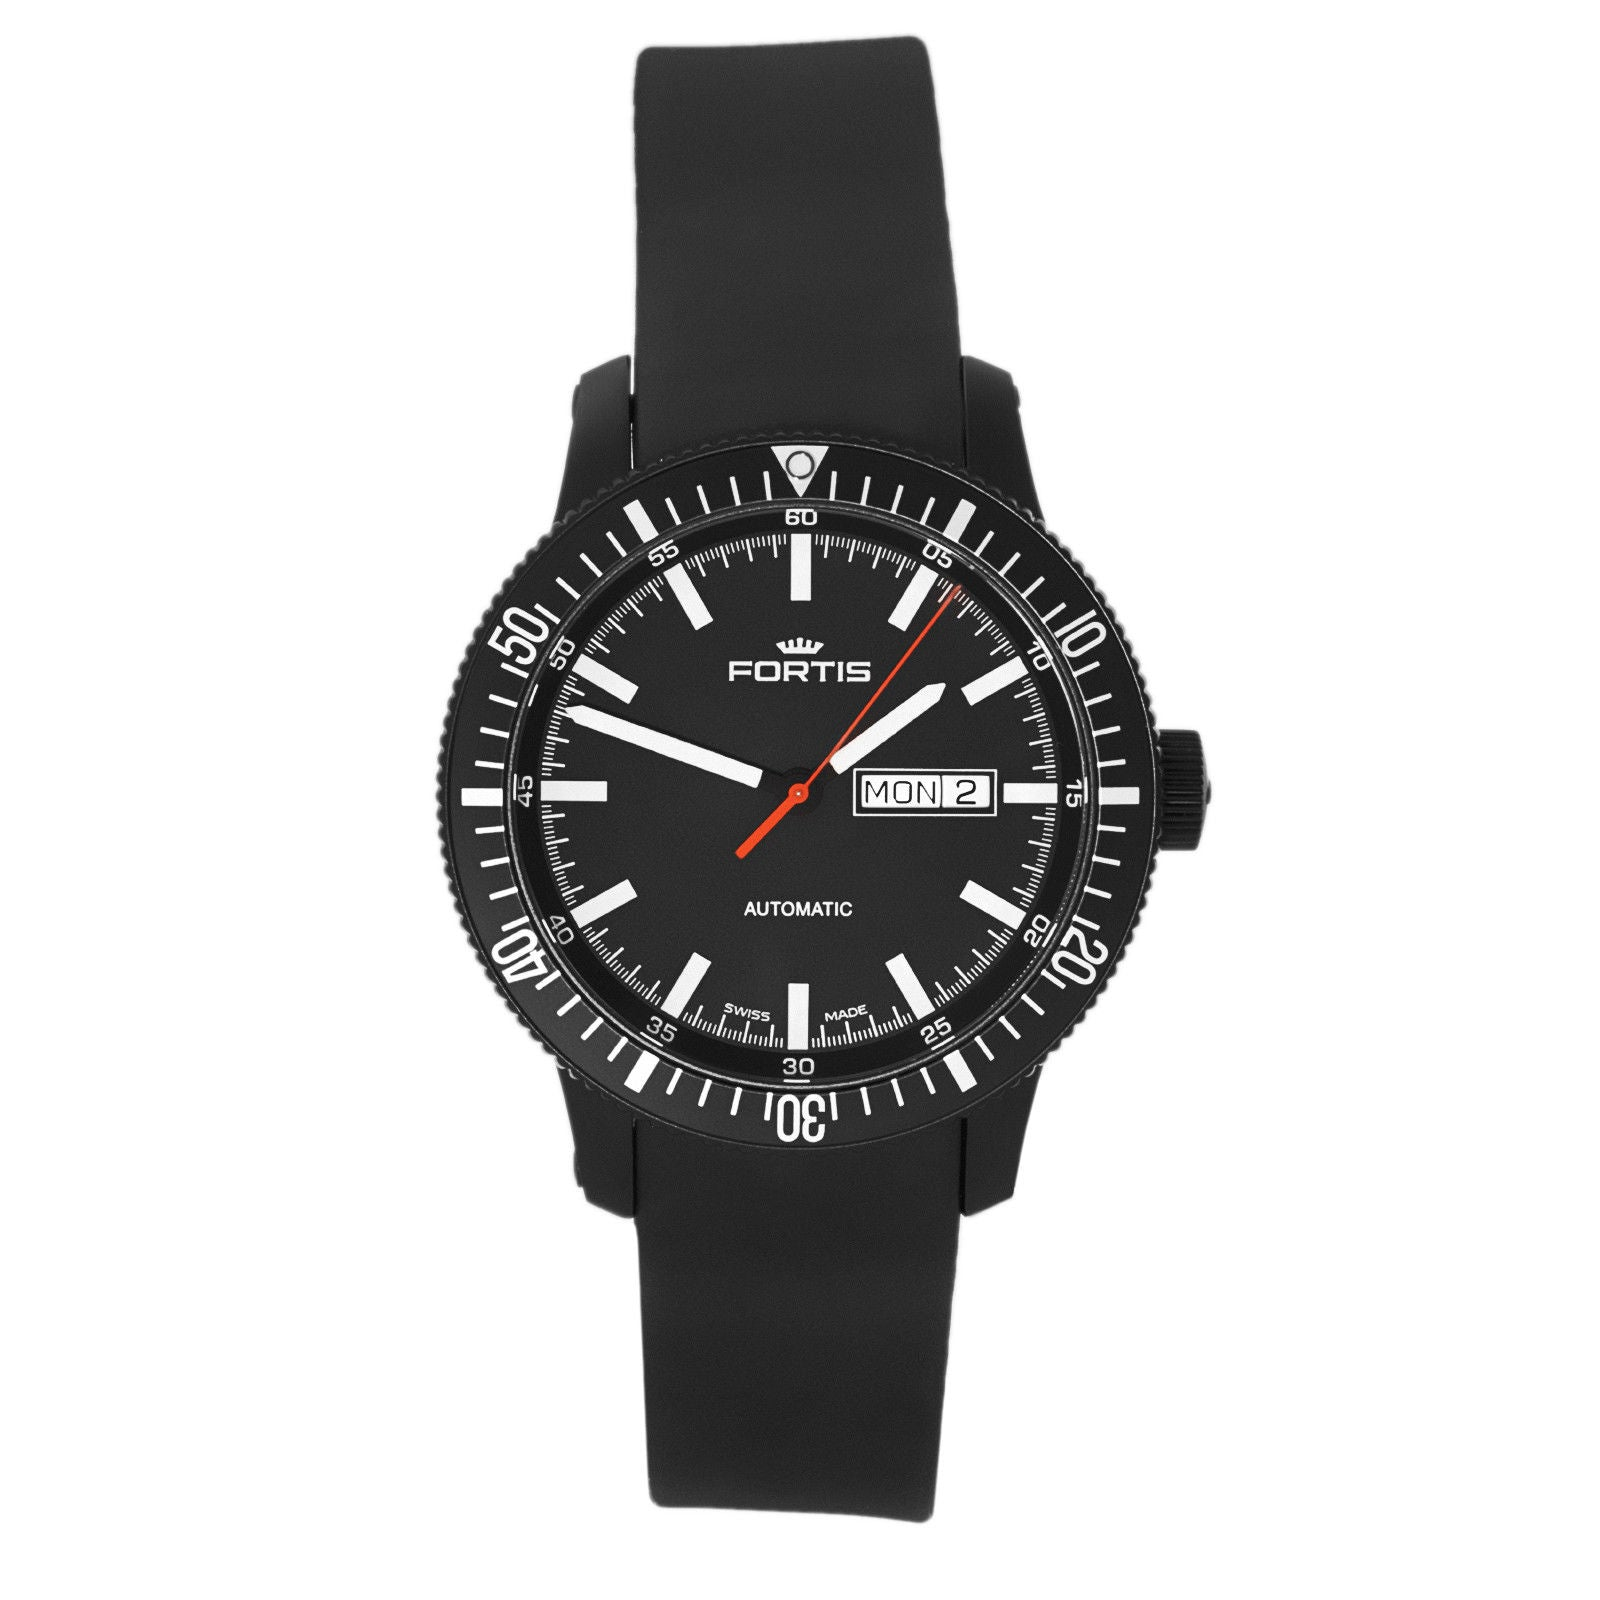 B-42 Monolith Automatic Mens Swiss Watch 647.18.31.K-Luxury Watches | Mens And Ladies Luxury Watches | Upscale Time